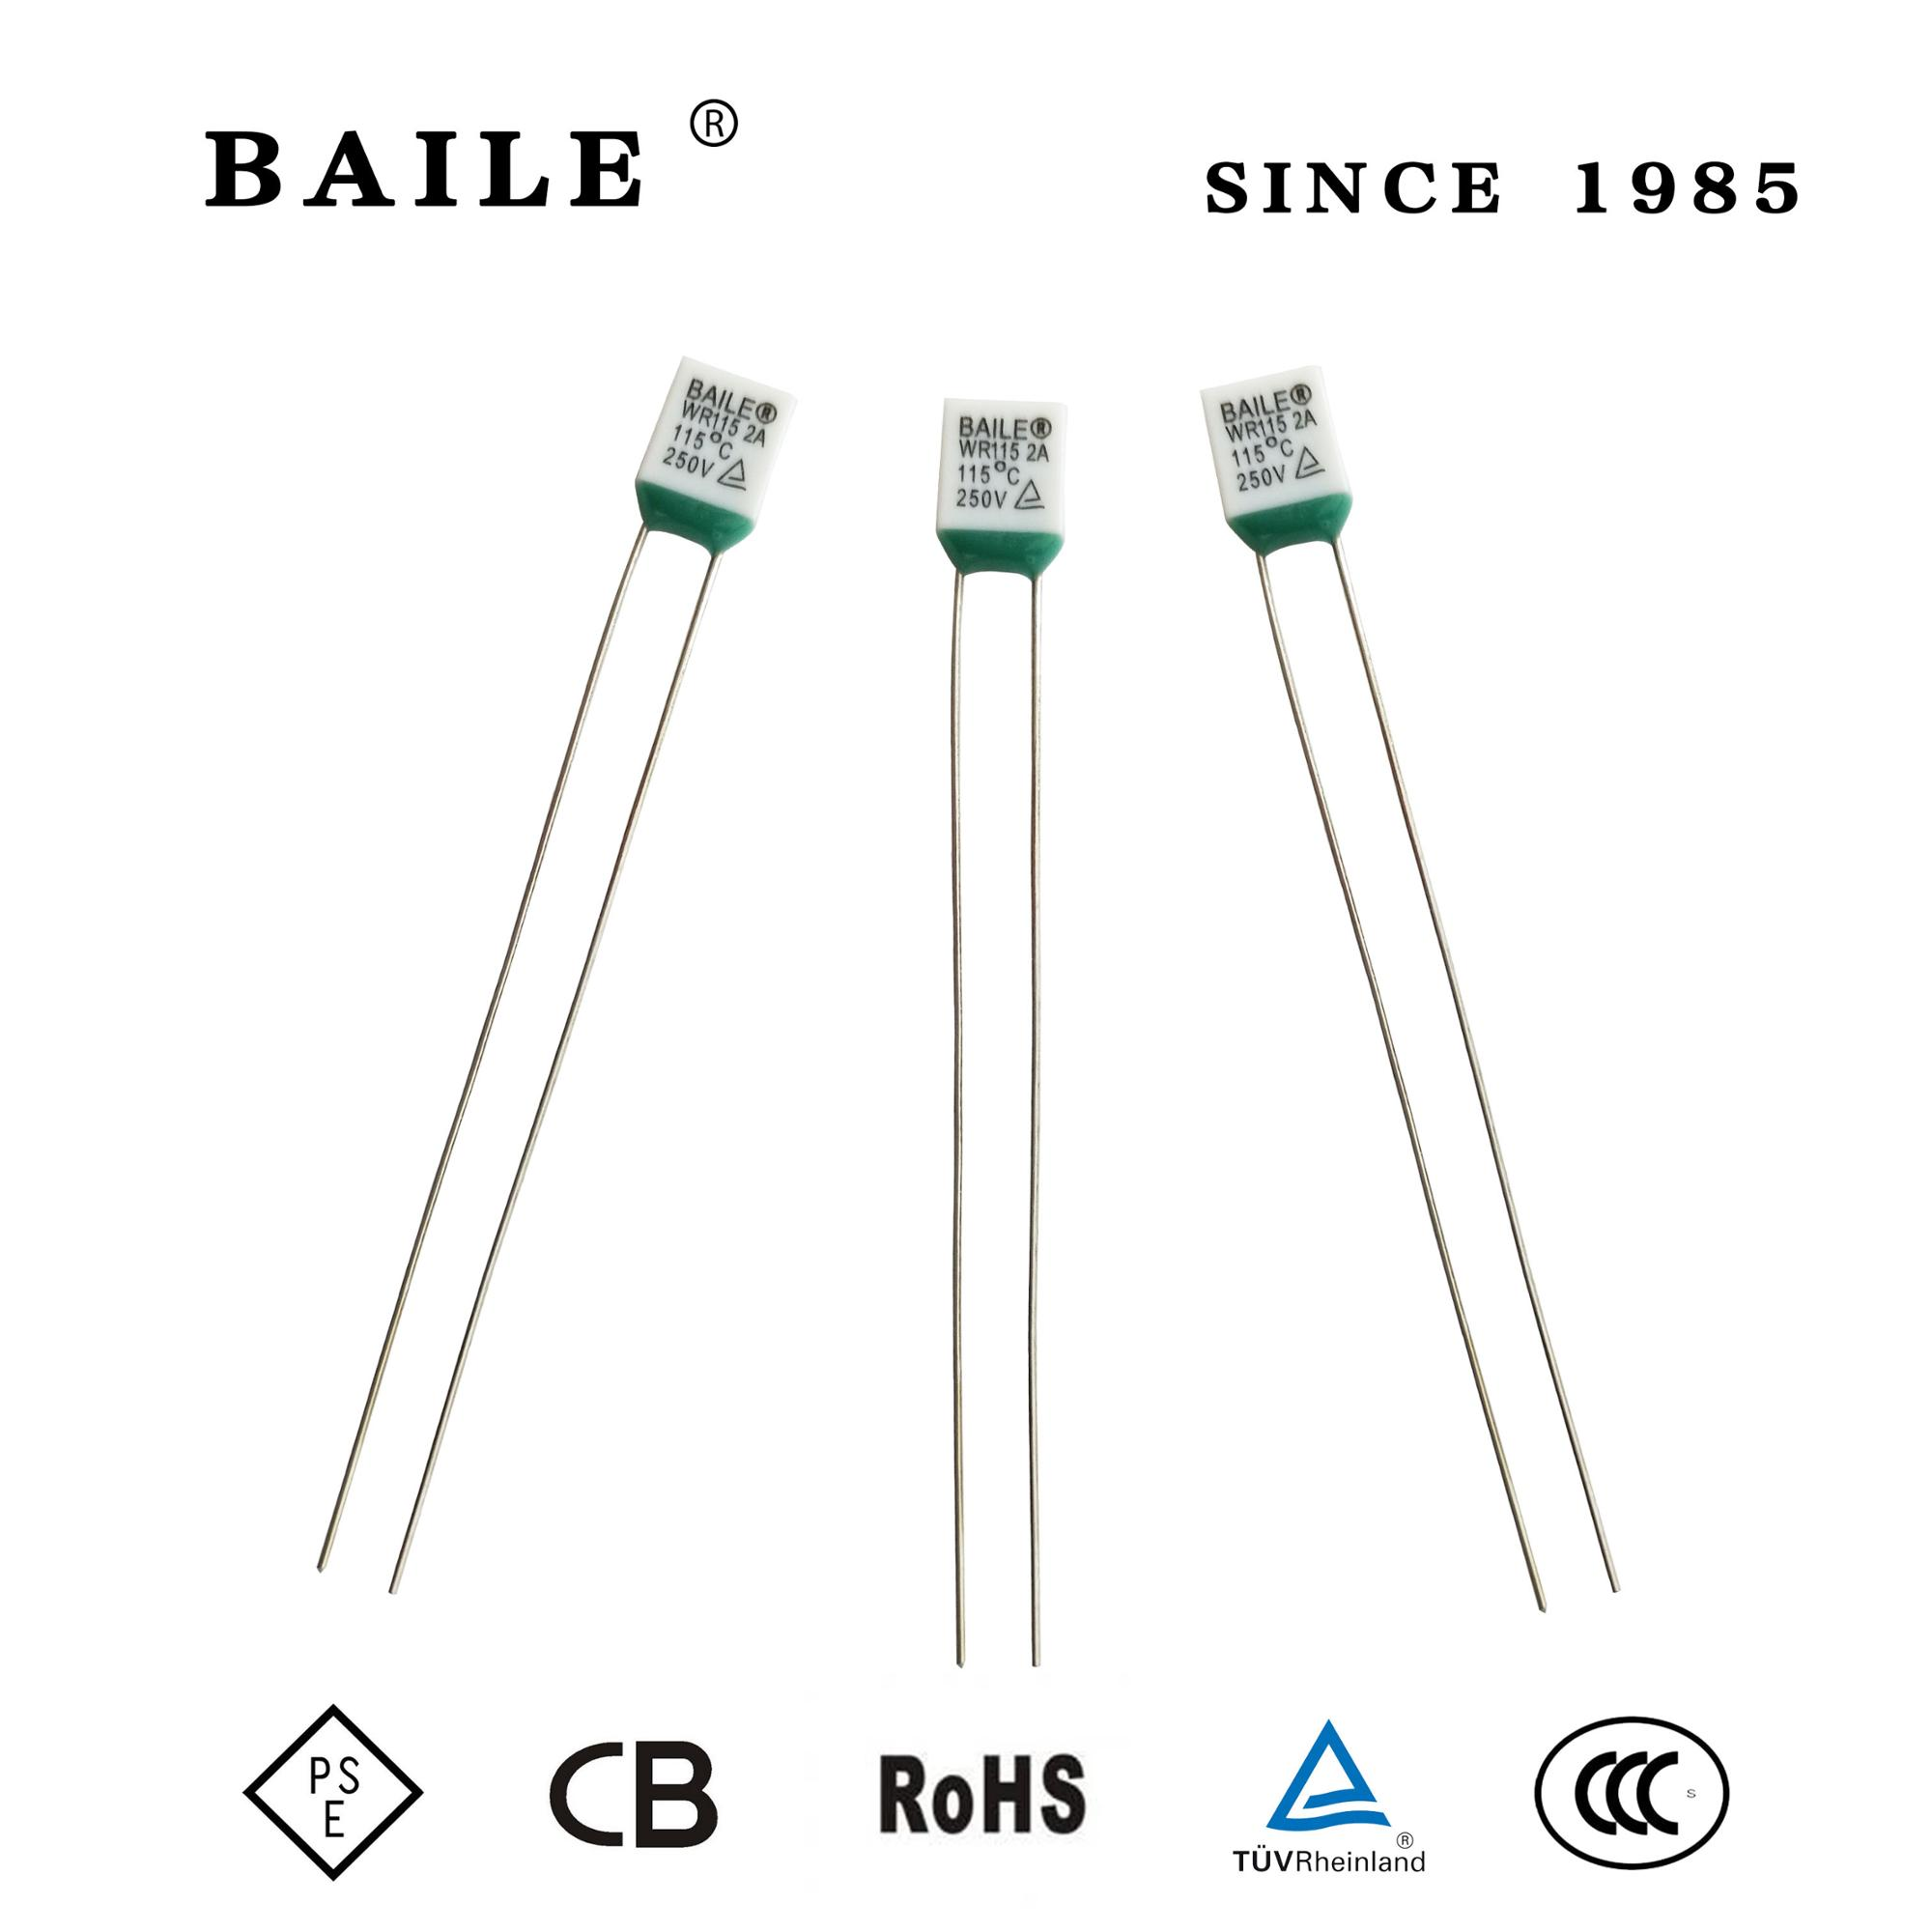 Baile Wr Series Aupo Thermal Fuse For Switch 2a 250v 115c